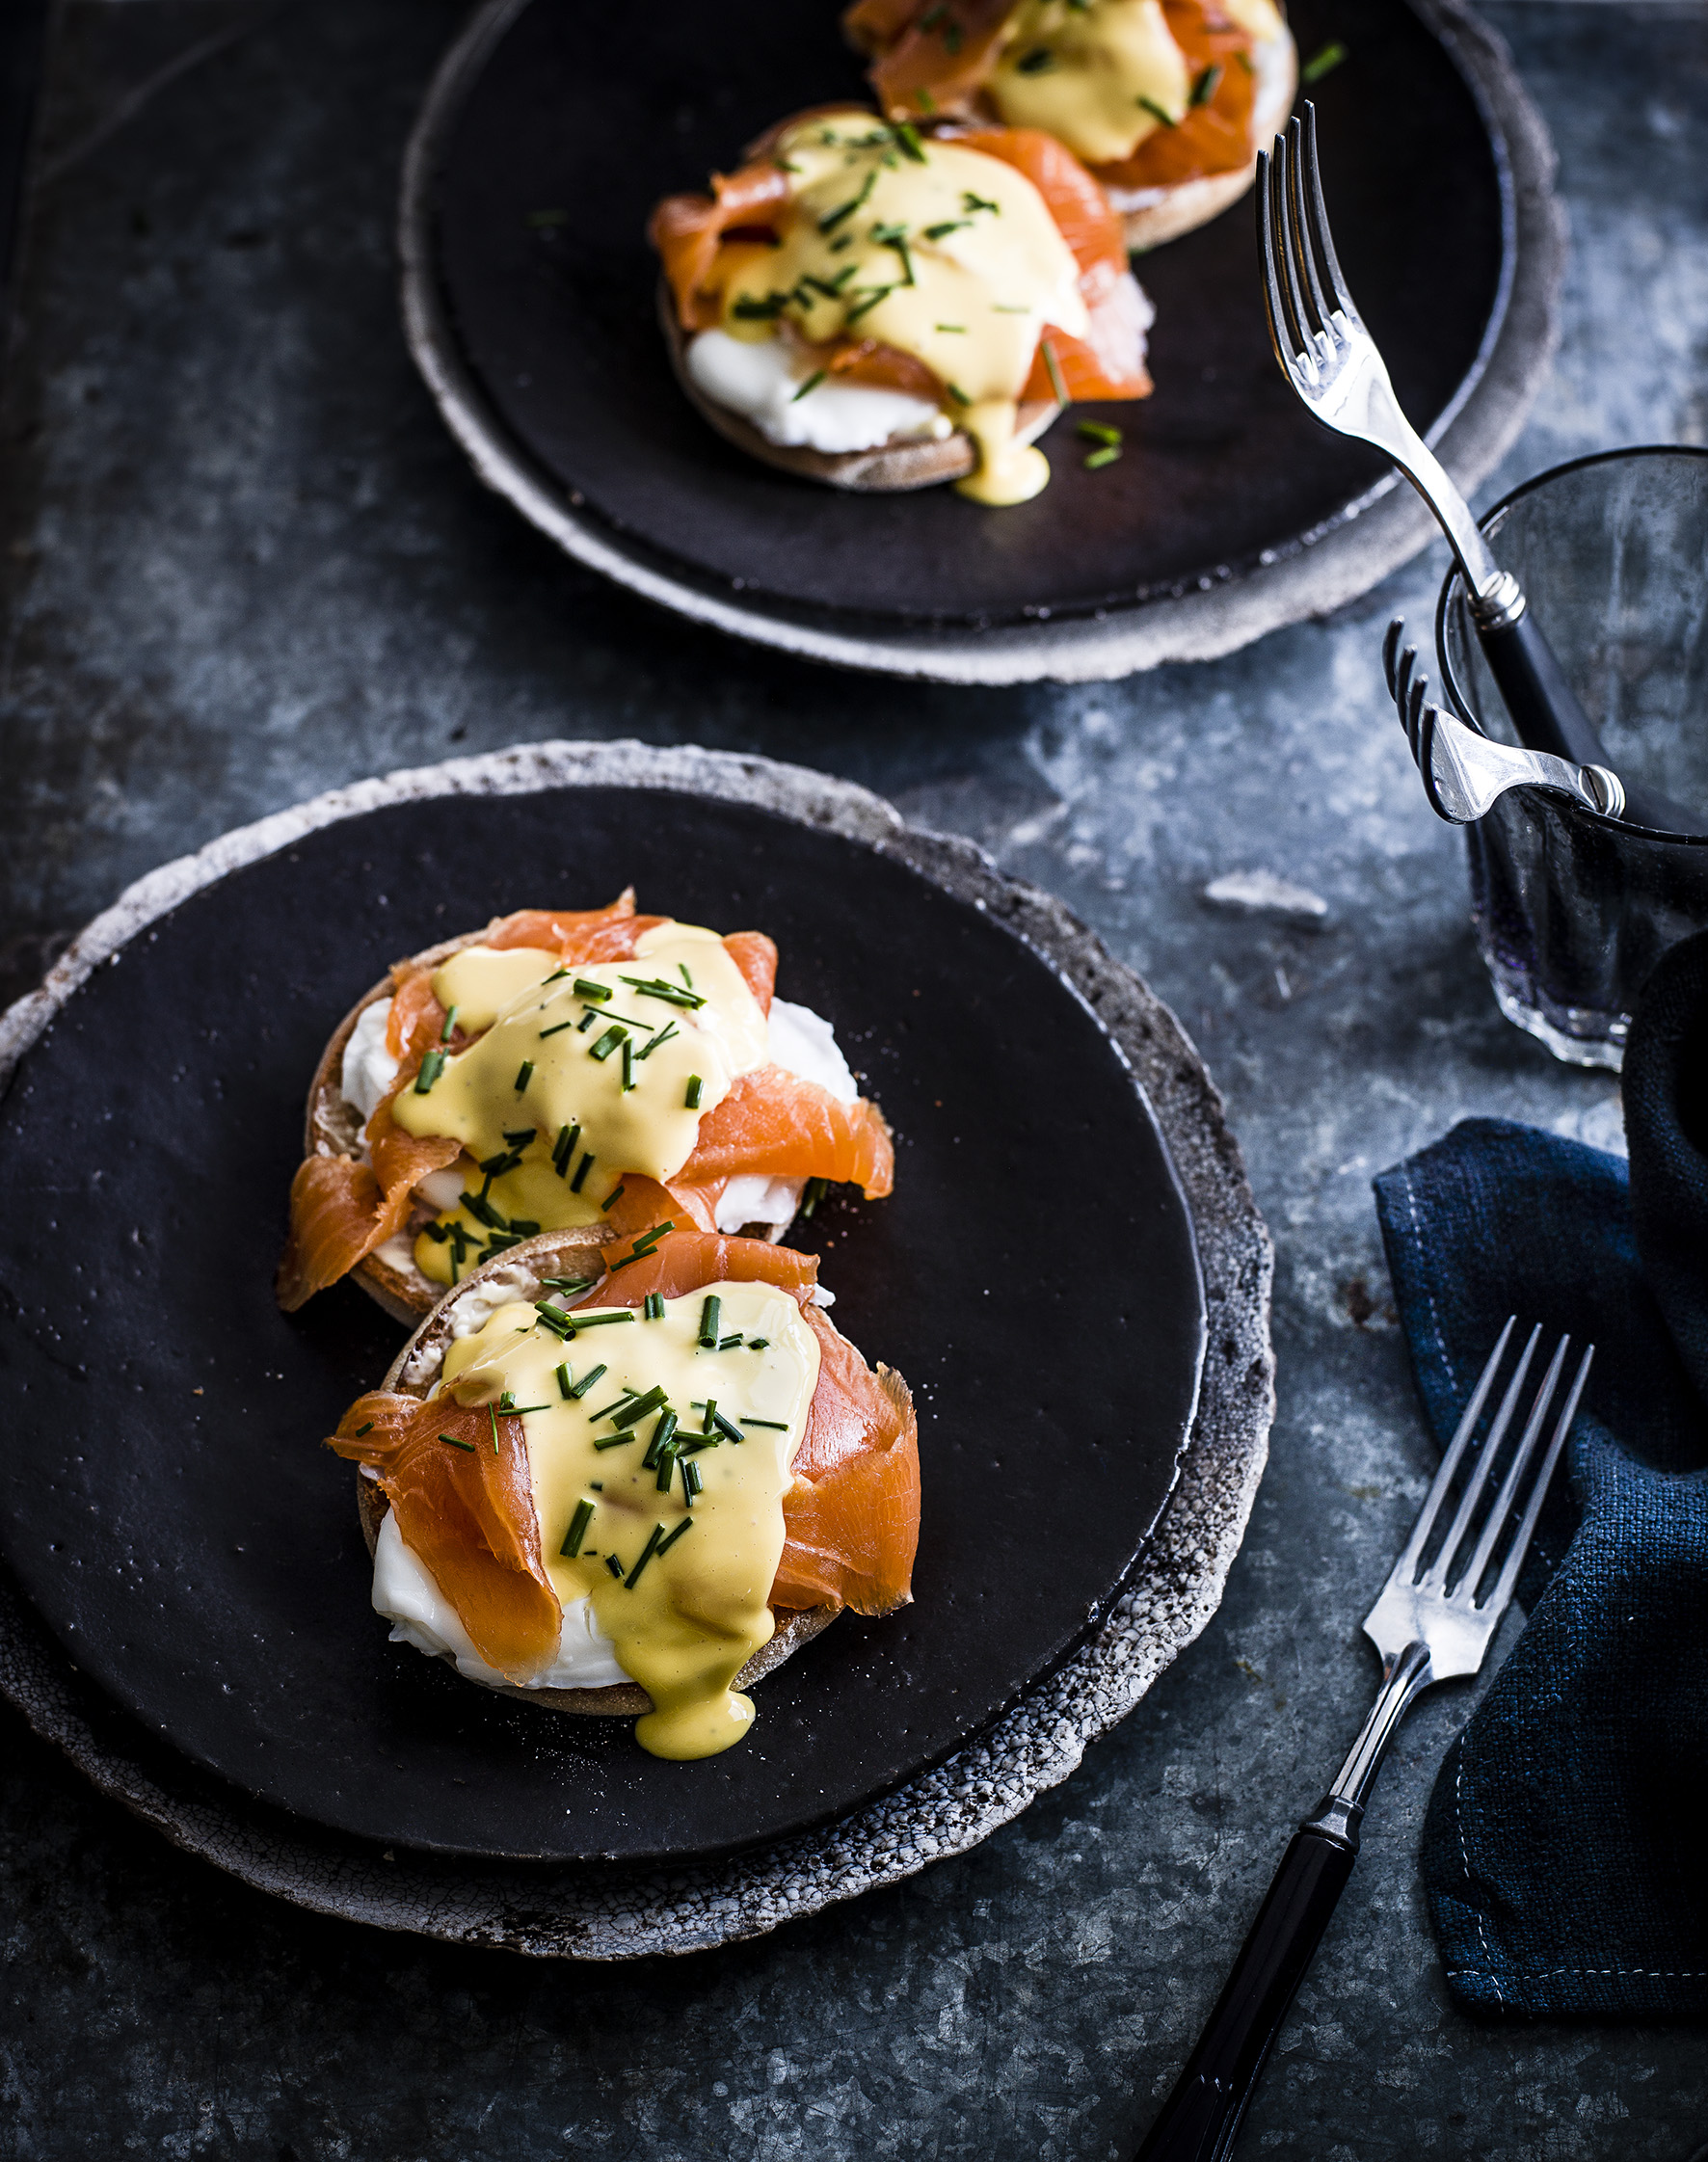 Eggs royale with trout and yuzu hollandaise